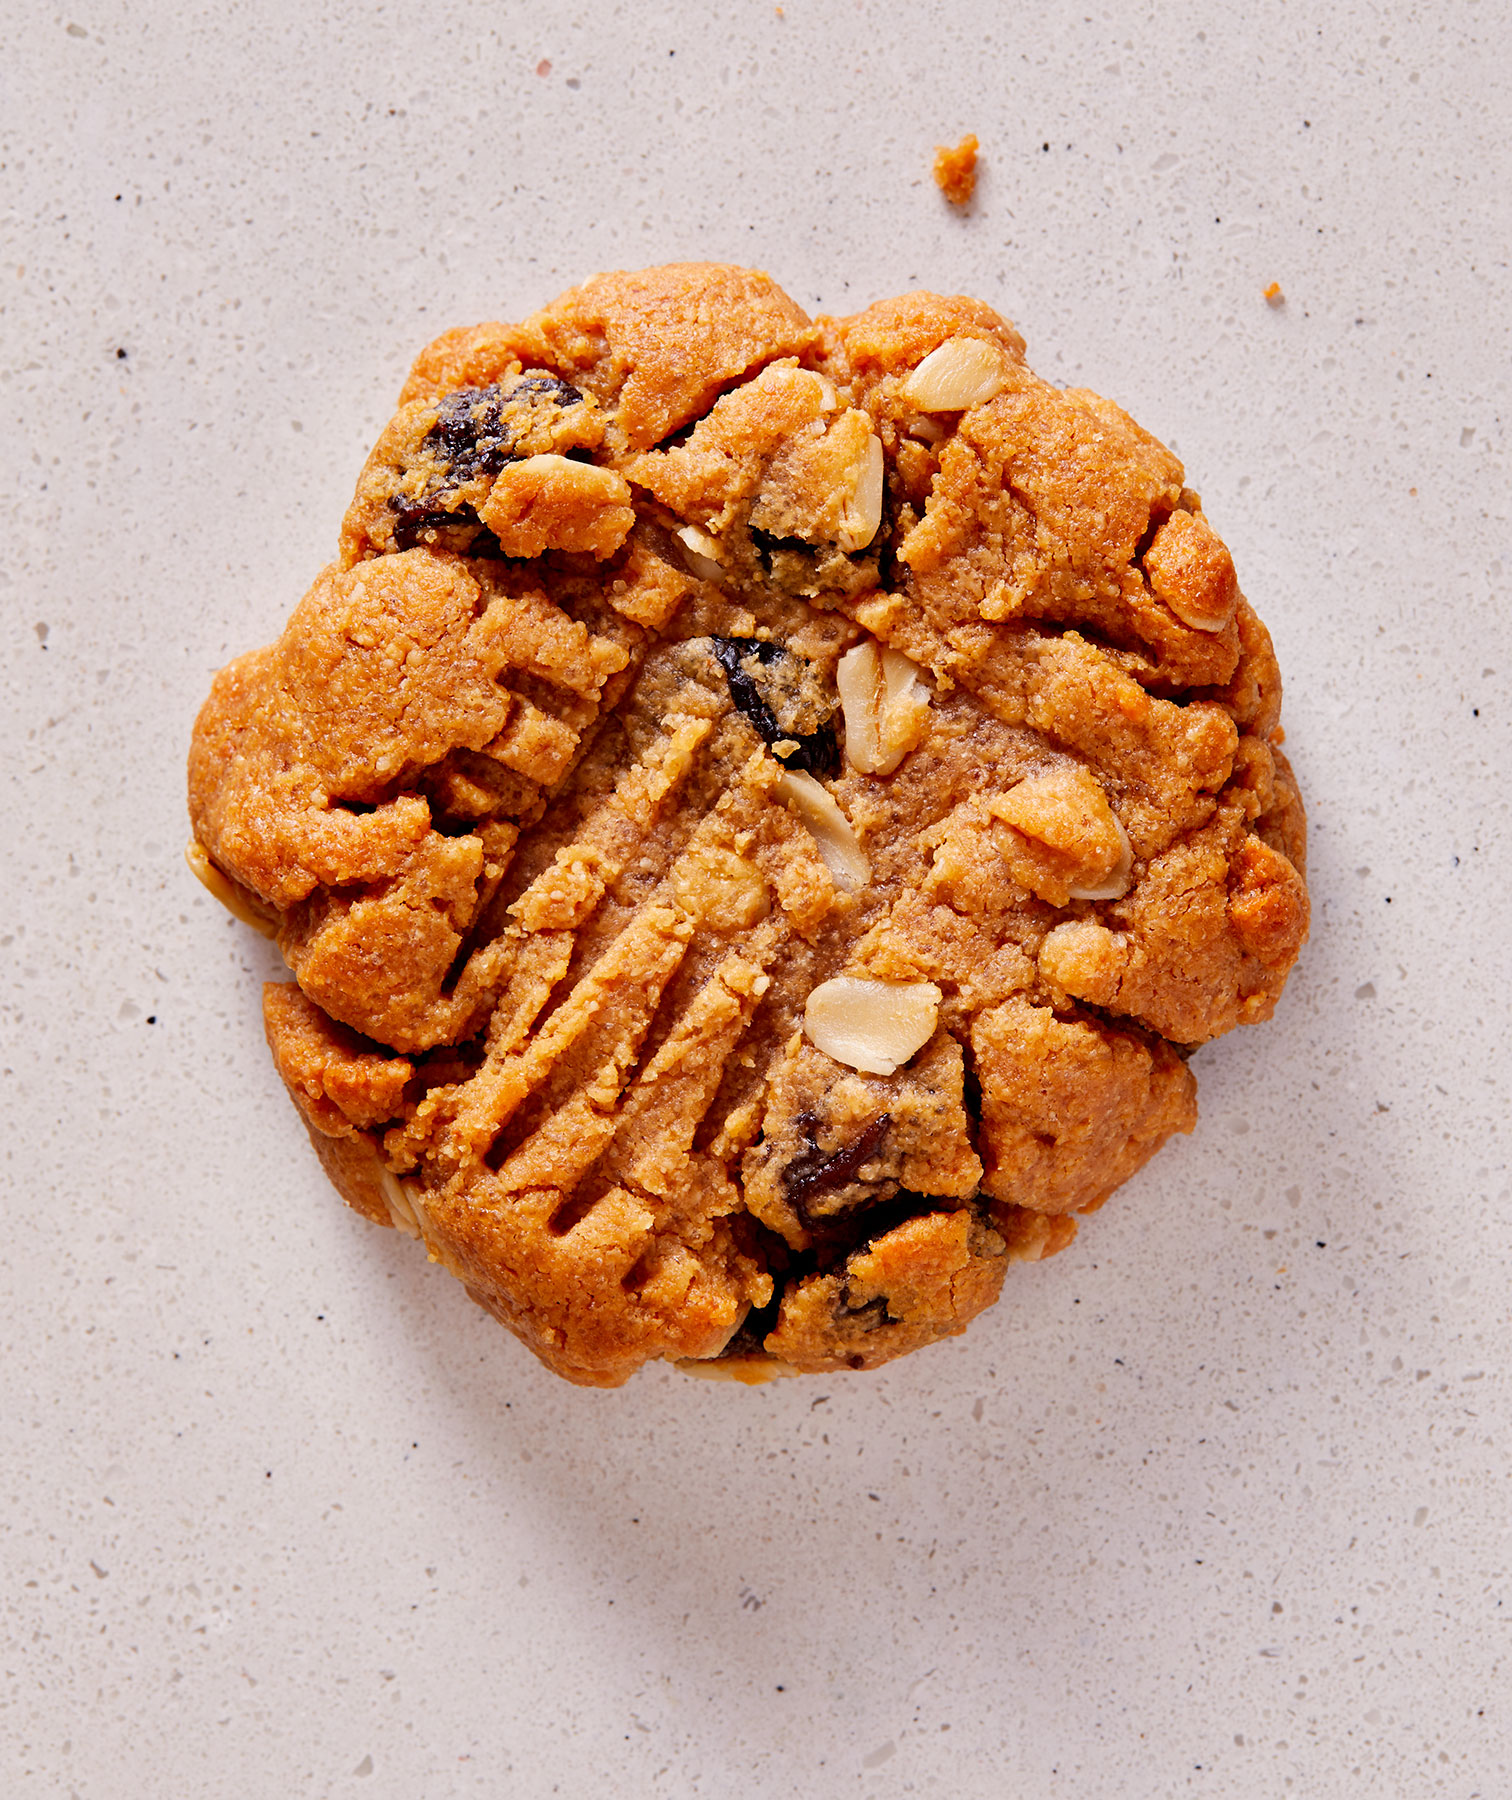 Oatmeal-Cinnamon-Raisin Swirl Peanut Butter Cookie